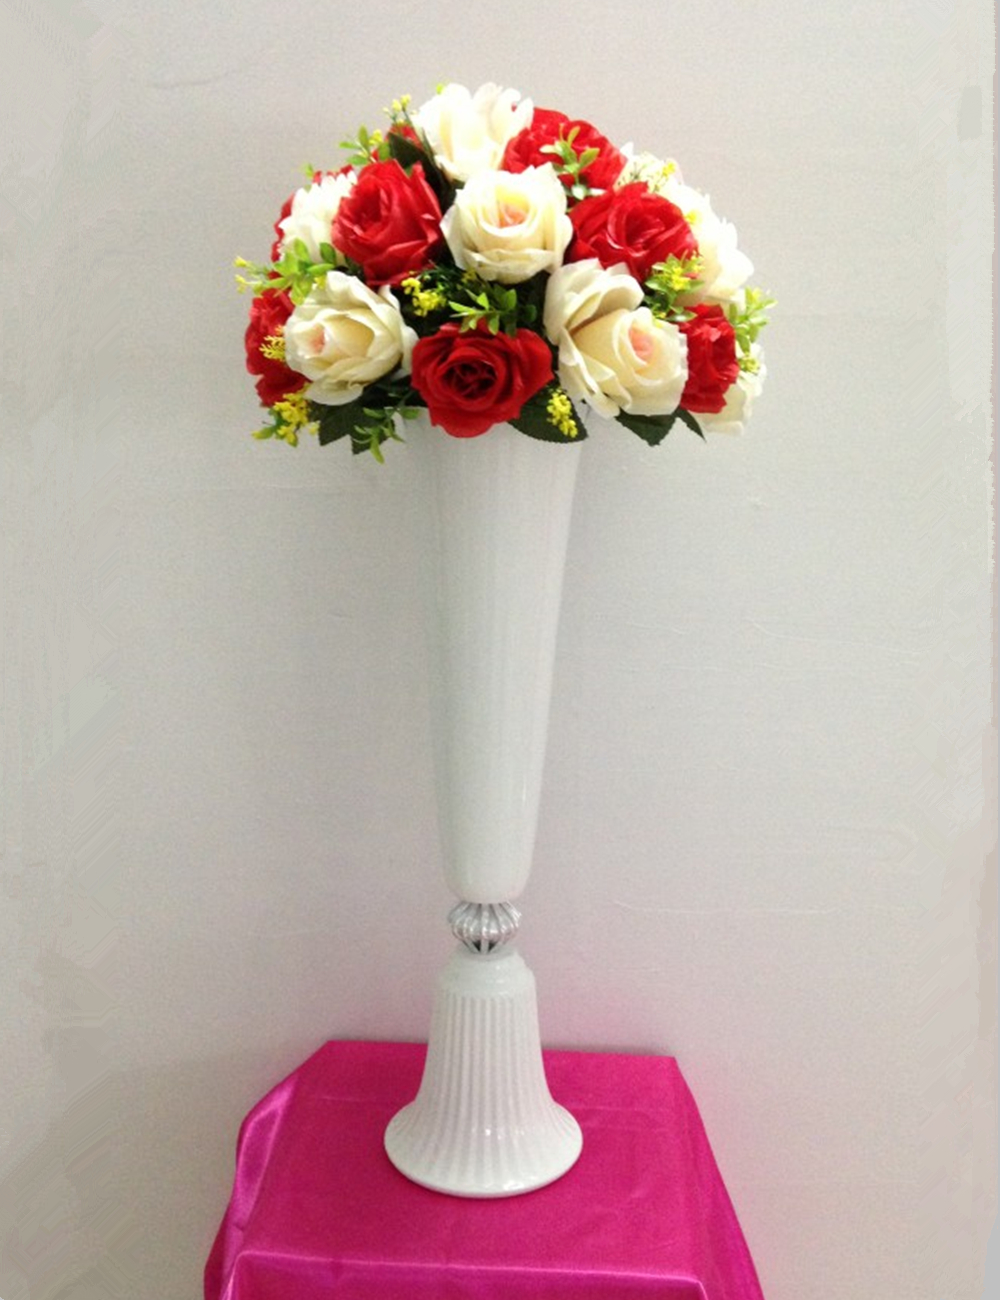 57cm height white metal candle holder candle stand wedding ...